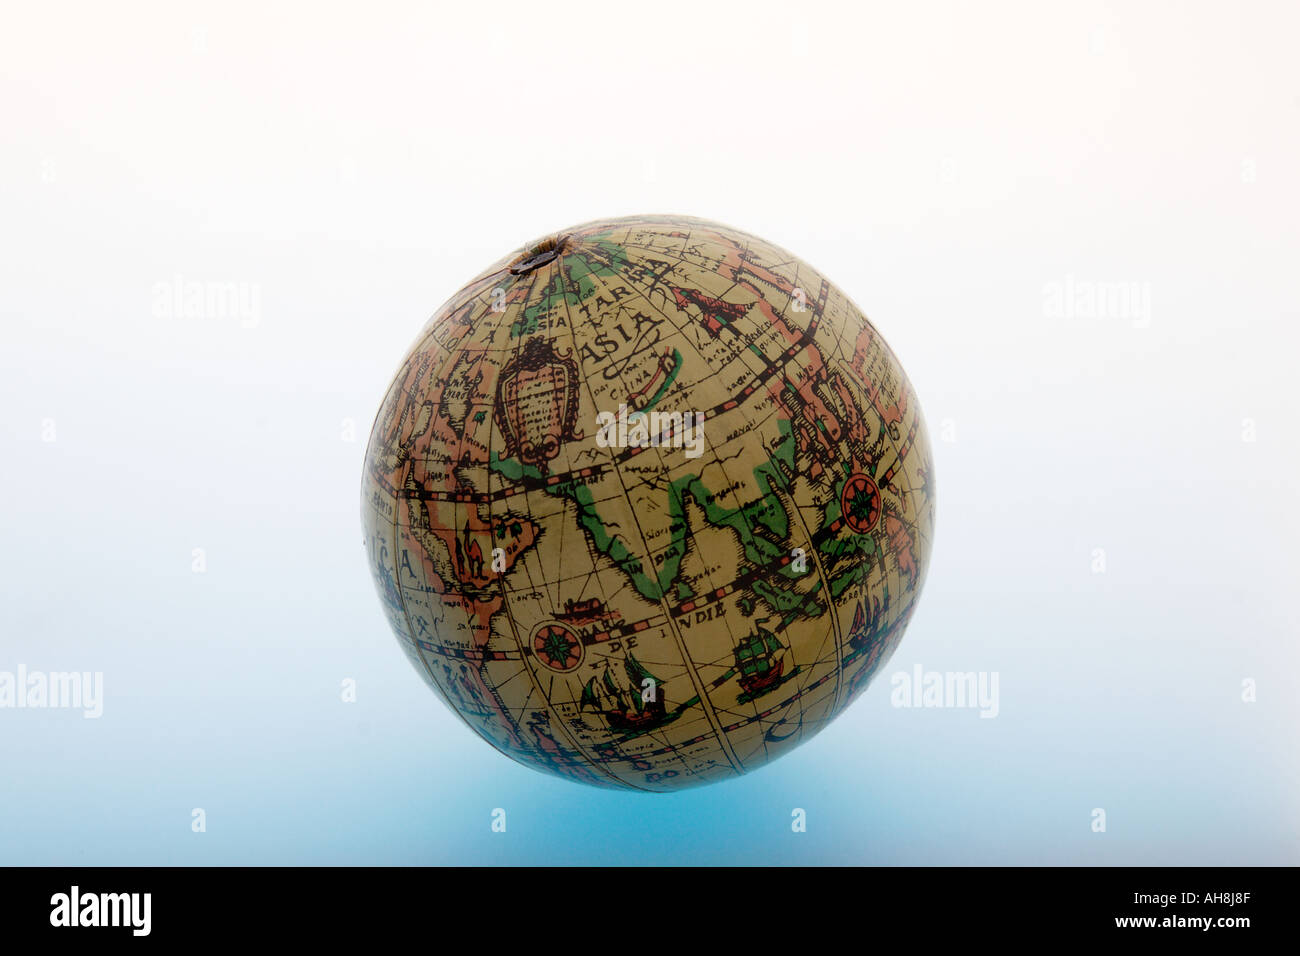 Aad71459 round spherical globe of ball shape of old world map aad71459 round spherical globe of ball shape of old world map showing earth asia indian ocean india on white background gumiabroncs